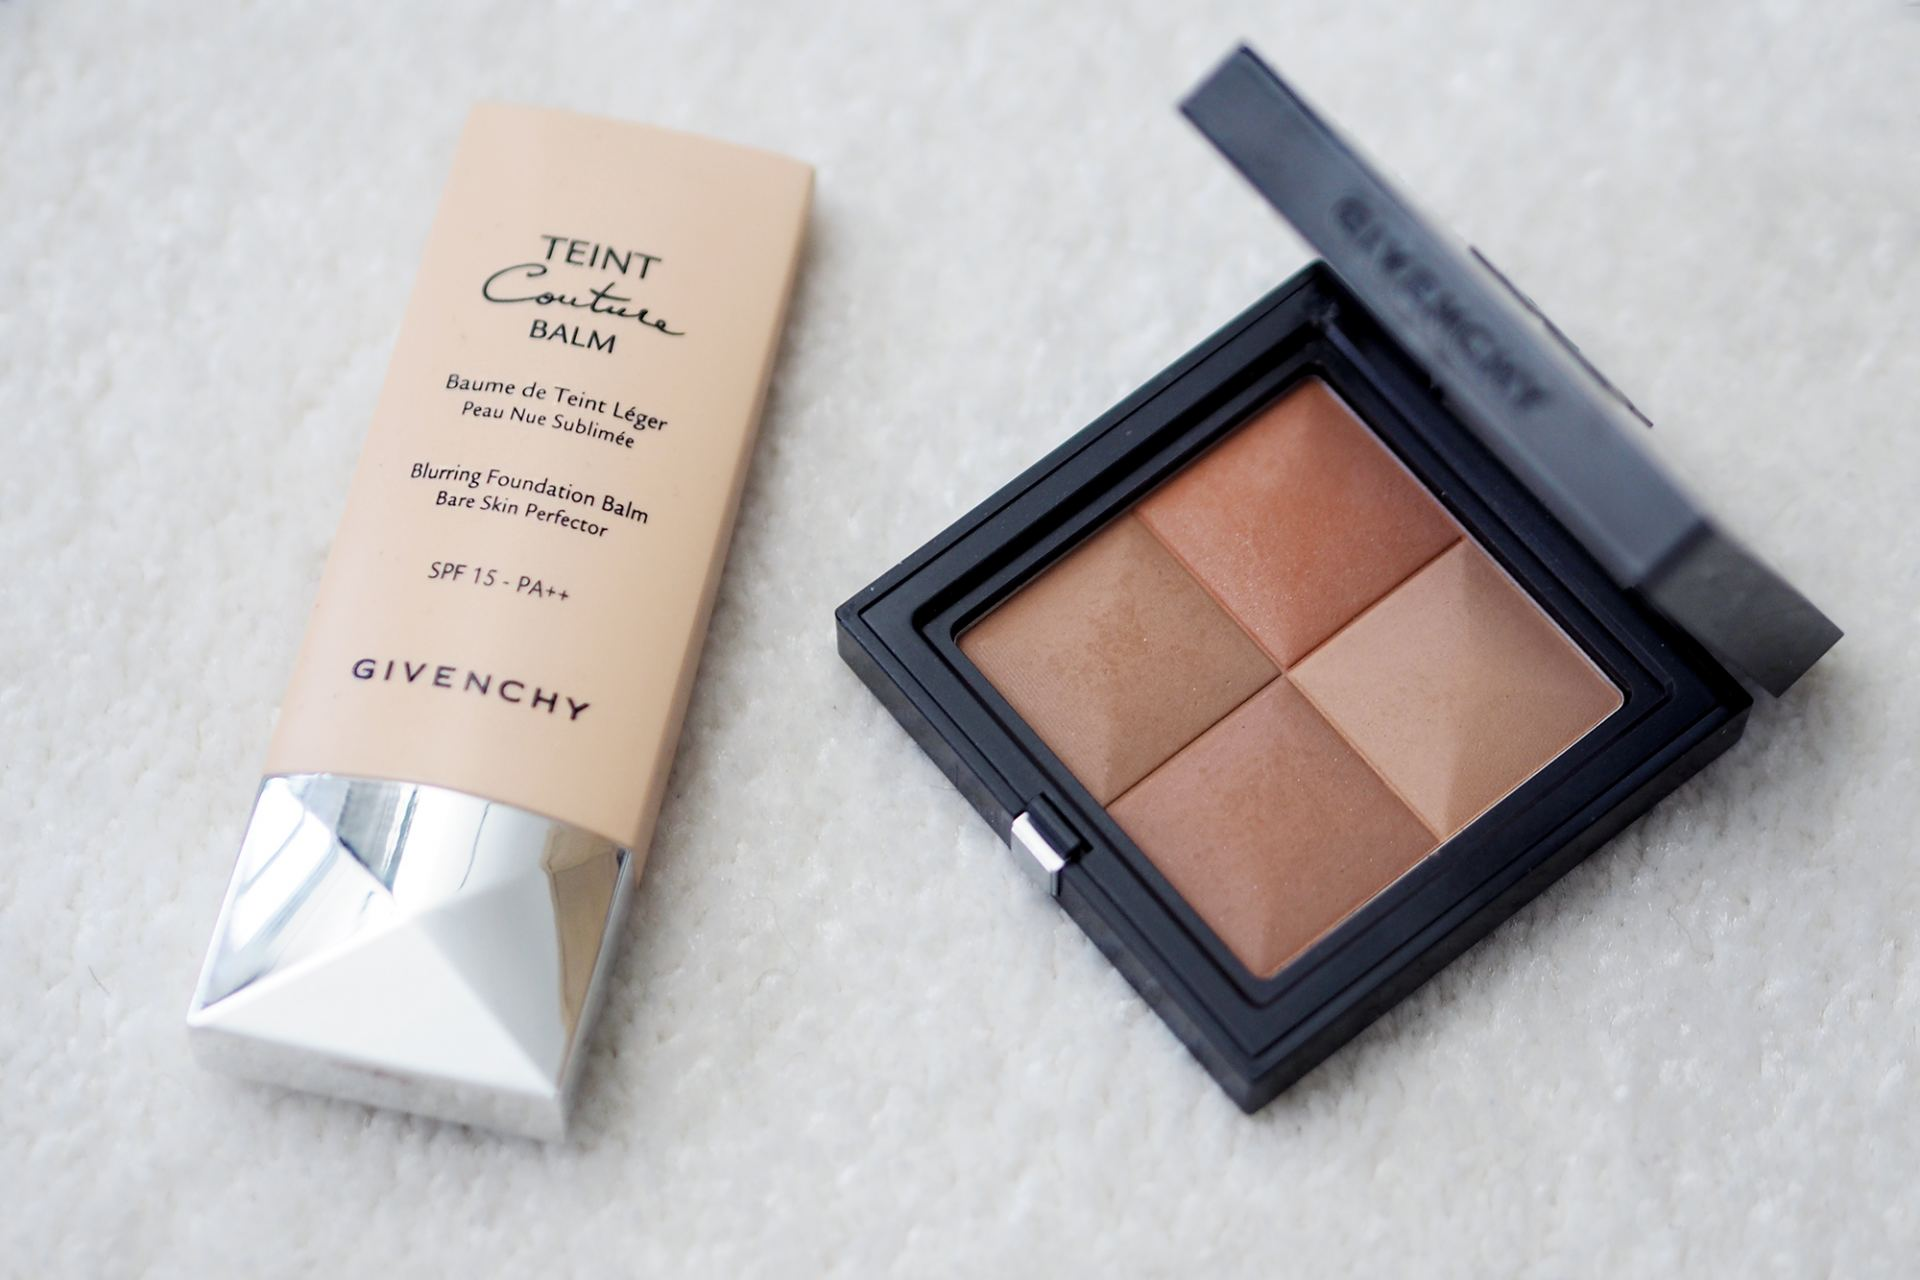 givenchy makeup favourites